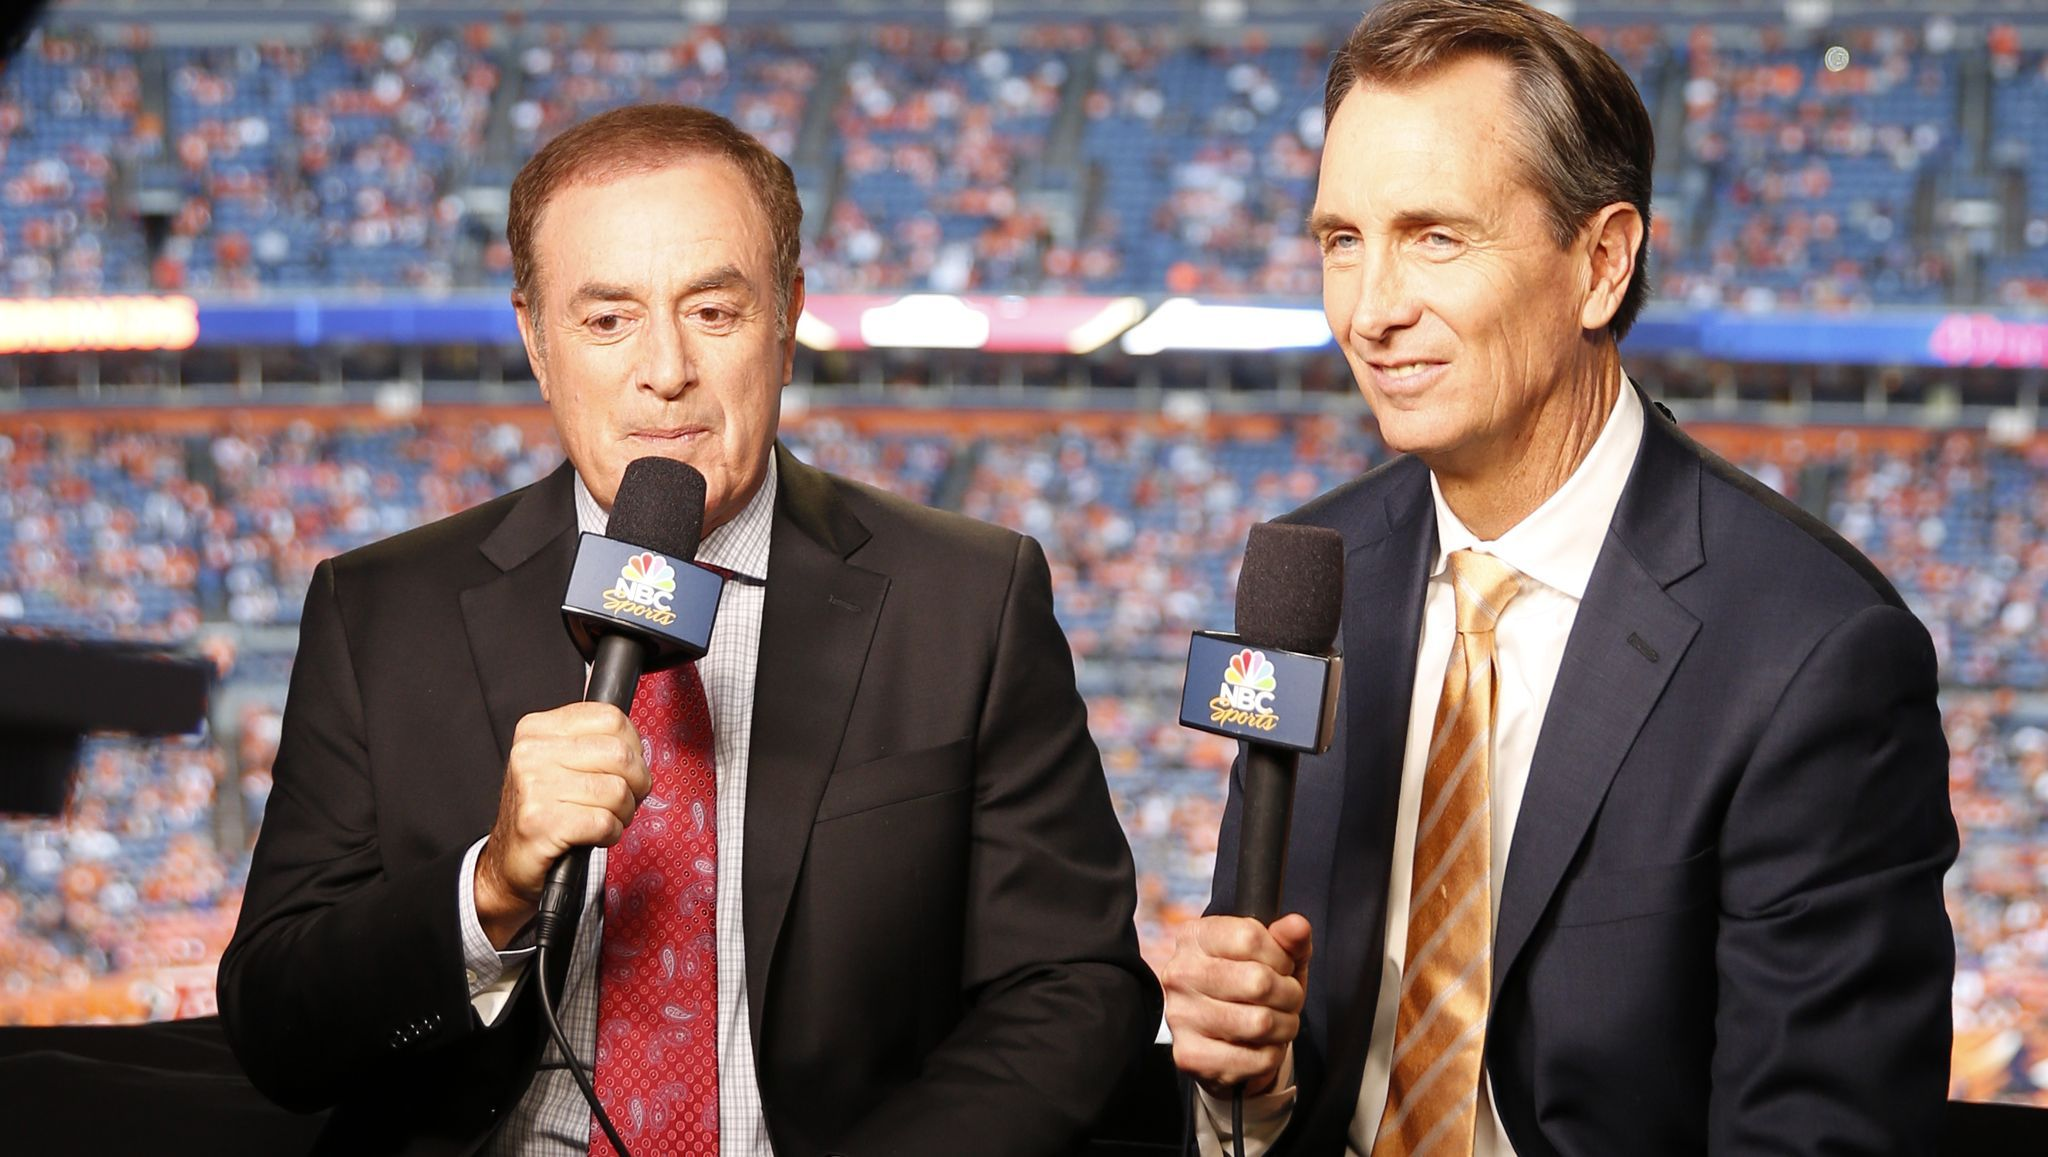 Super Bowl Tv Cris Collinsworth Rips Into Seahawks Call Nfl Football Pictures Nfl Playoffs Nfl